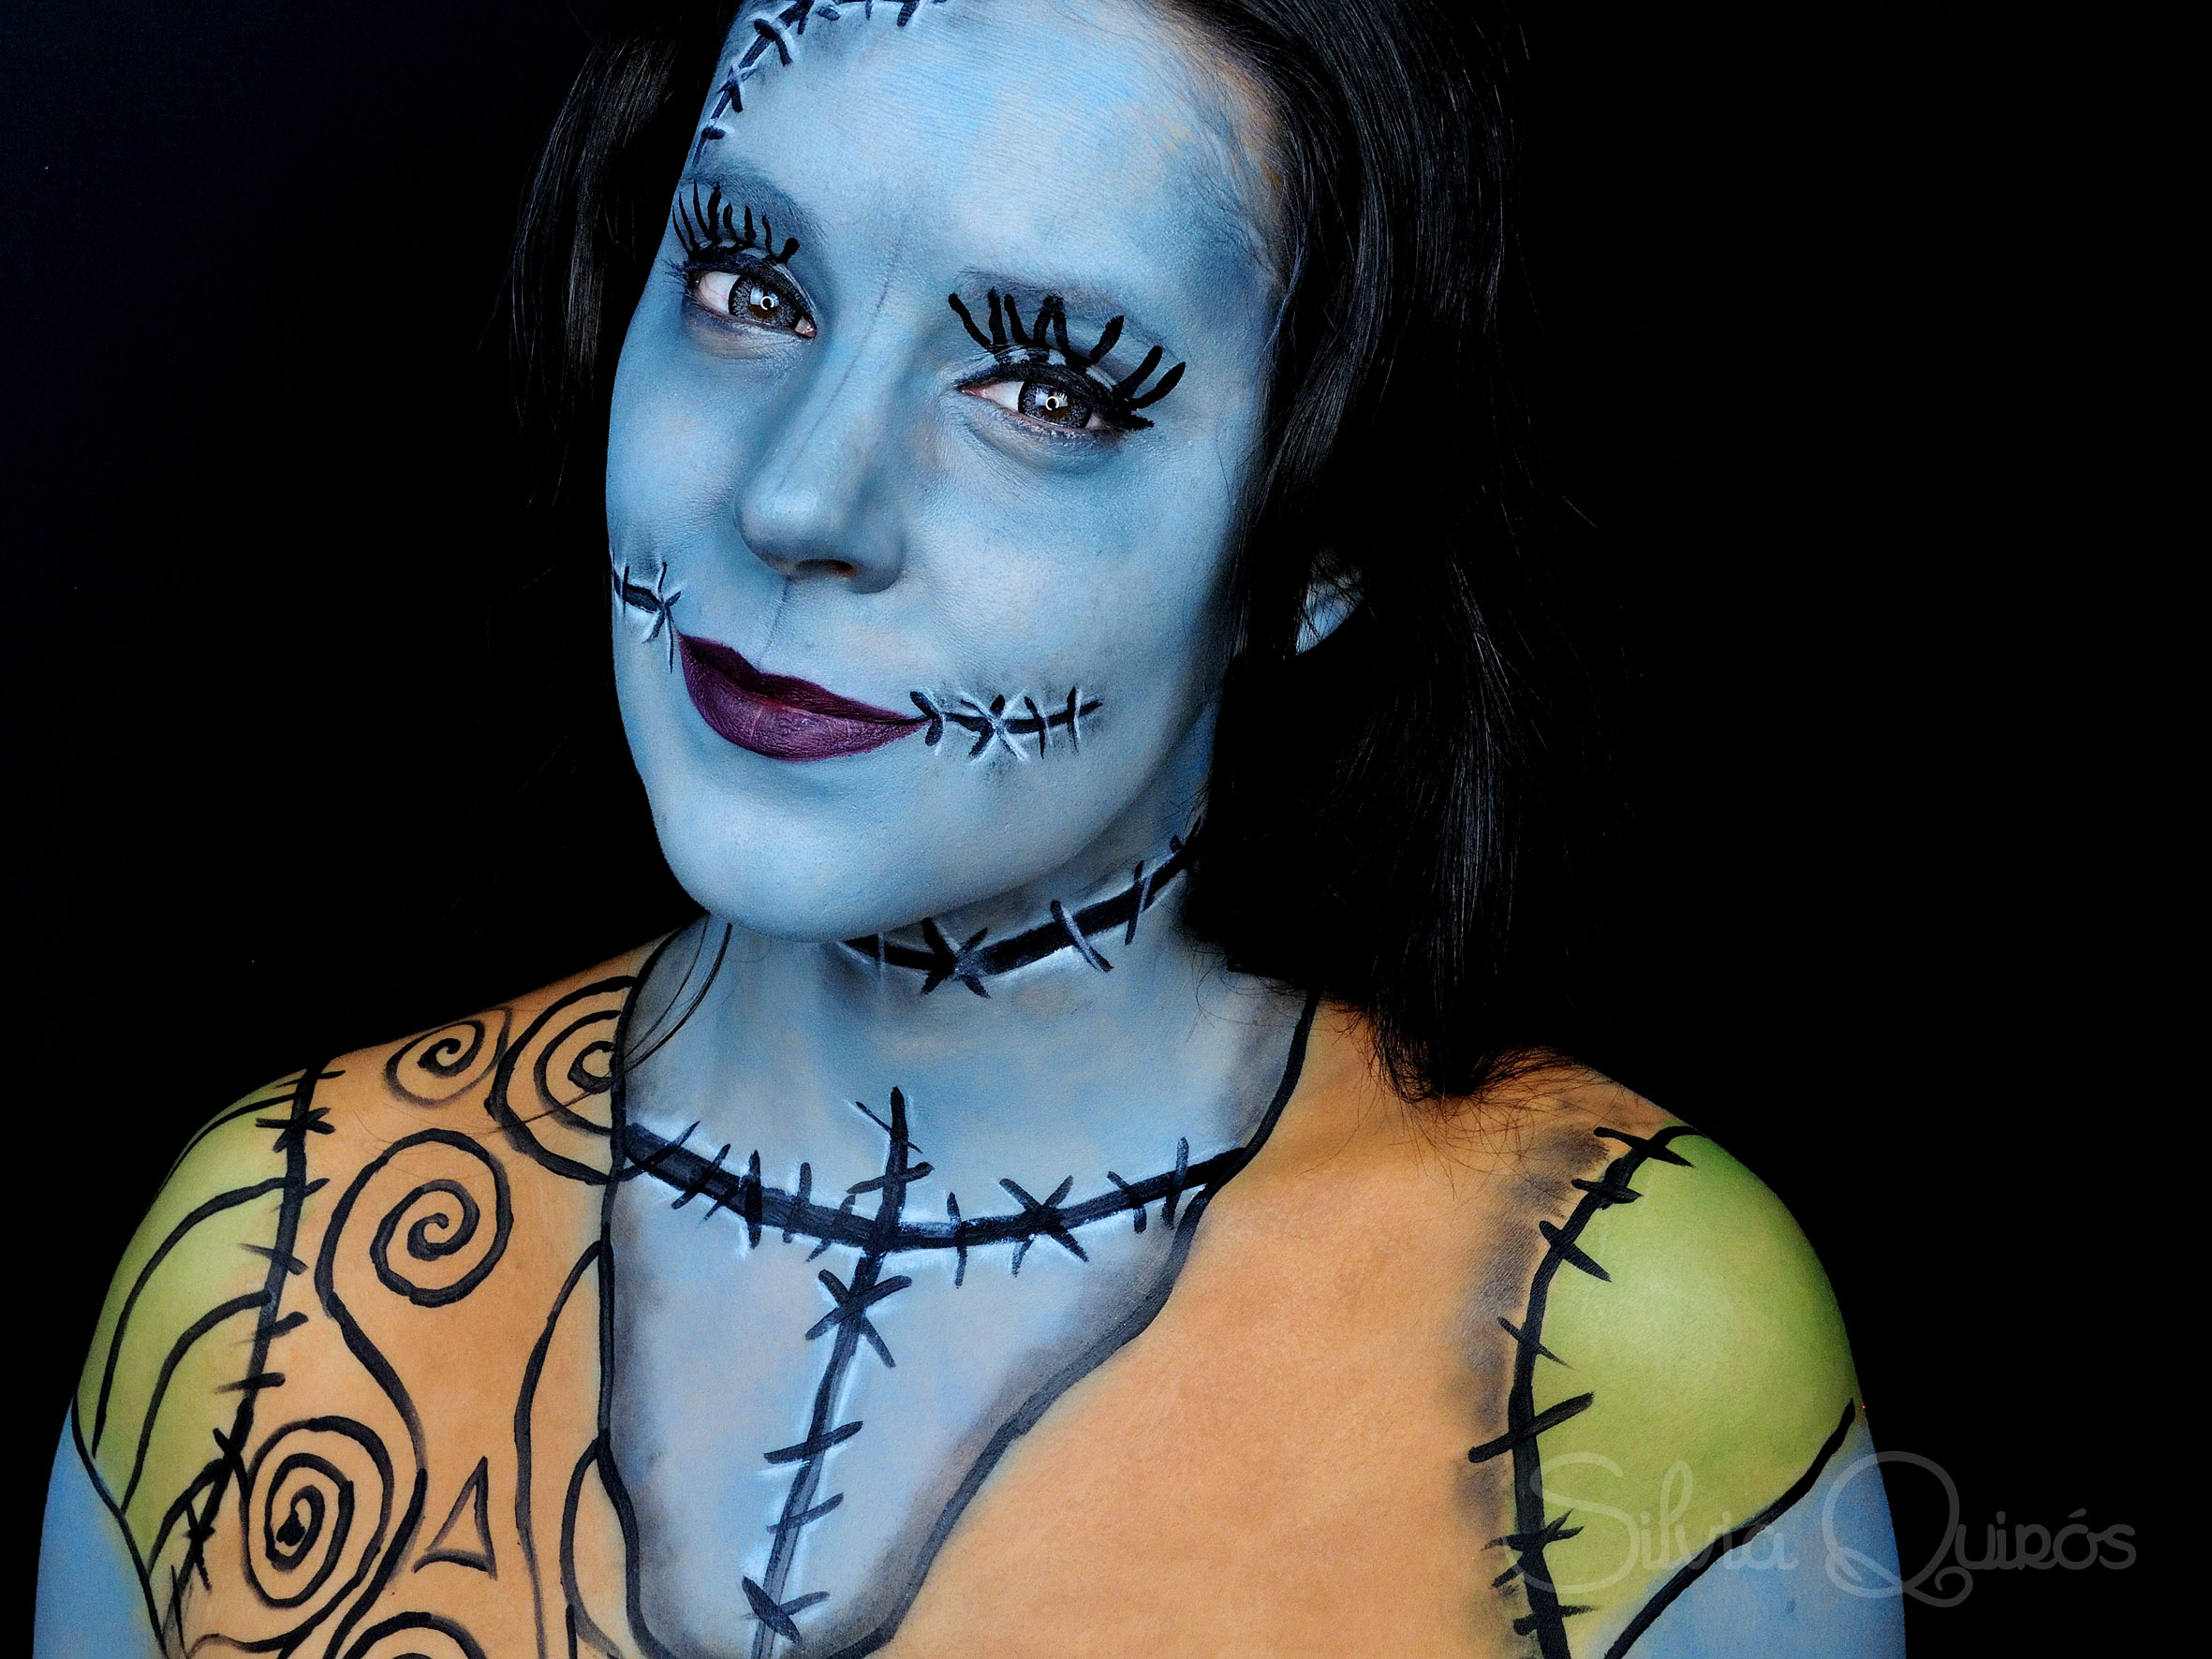 Nightmare before Christmas Sally makeup tutorial - Silvia Quirós